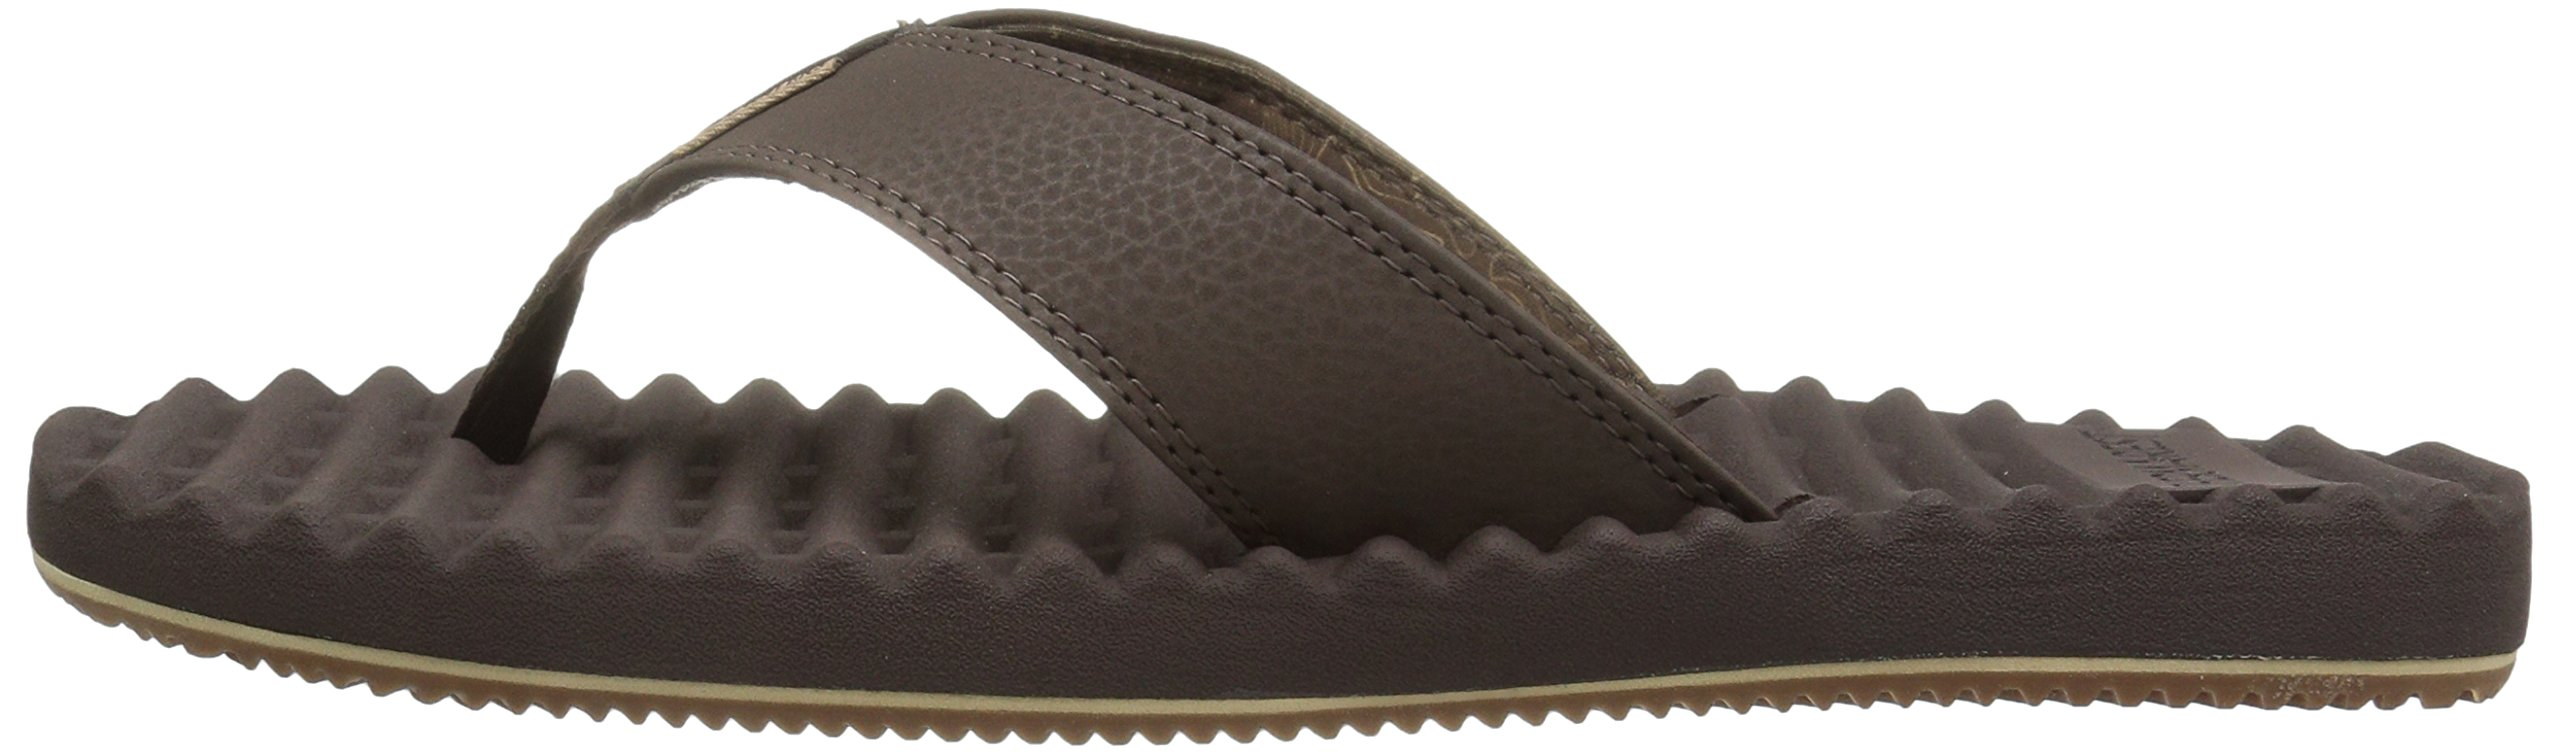 Freewaters Men's Basecamp Therm-a-Rest Flip Flop Sandal, Brown, 10 M US by Freewaters (Image #5)